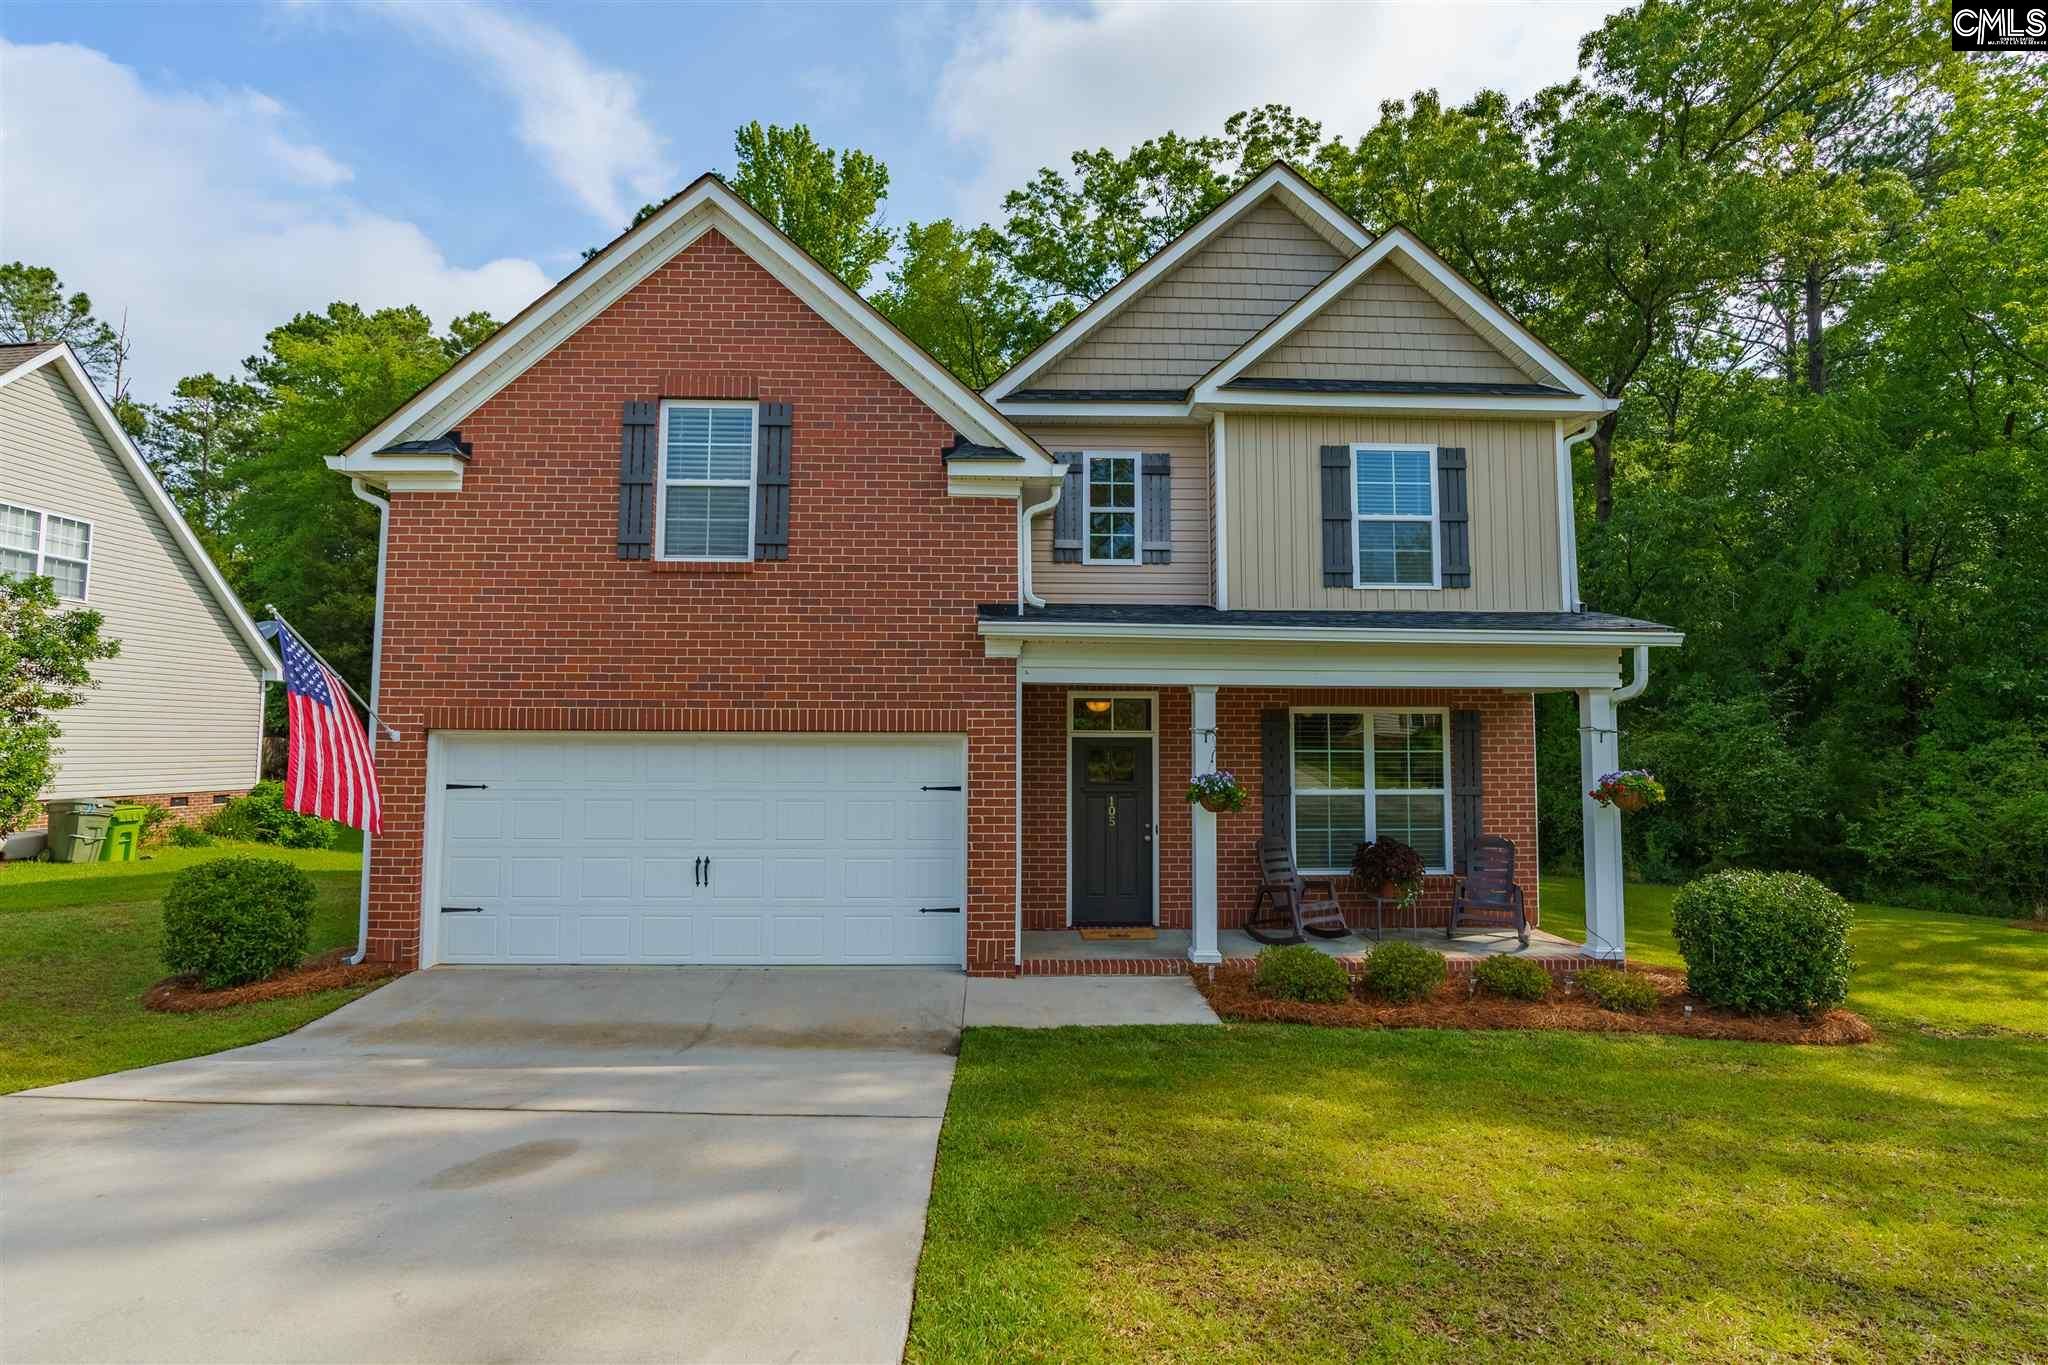 105 High Bluff Irmo, SC 29063